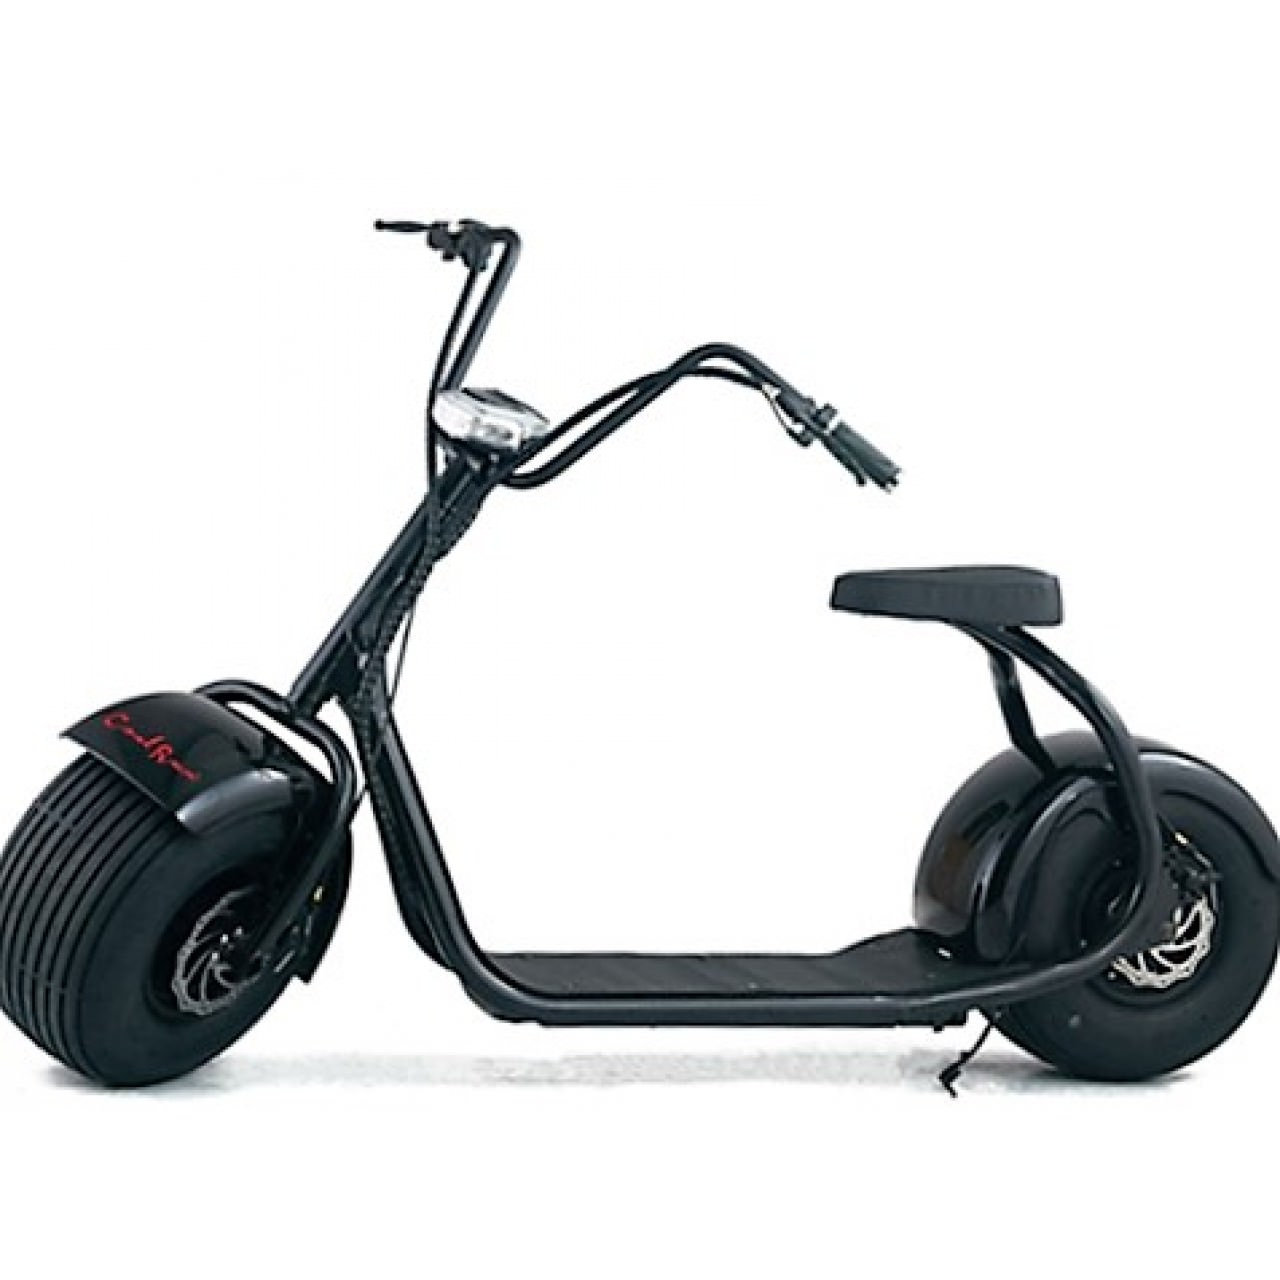 electric scooter harley hover dream 77 ood service repair manual samsung clp-360-365w workshop service repair manual download